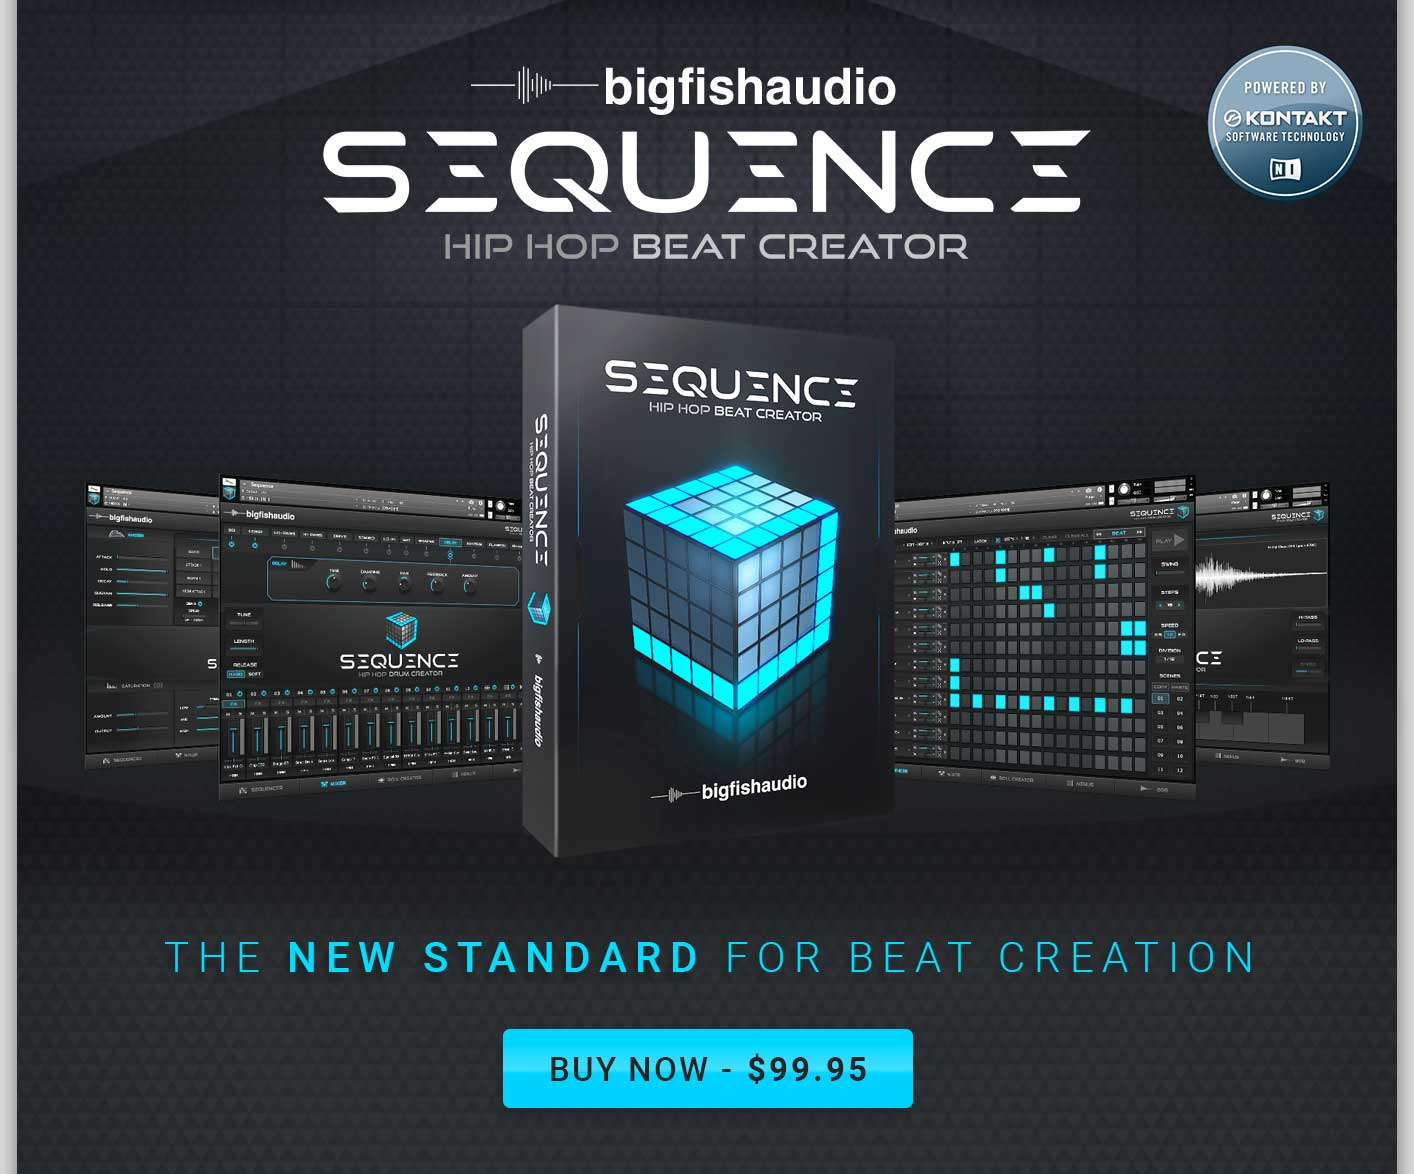 Big Fish Audio Now Available! Sequence: Hip Hop Beat Creator! Beat